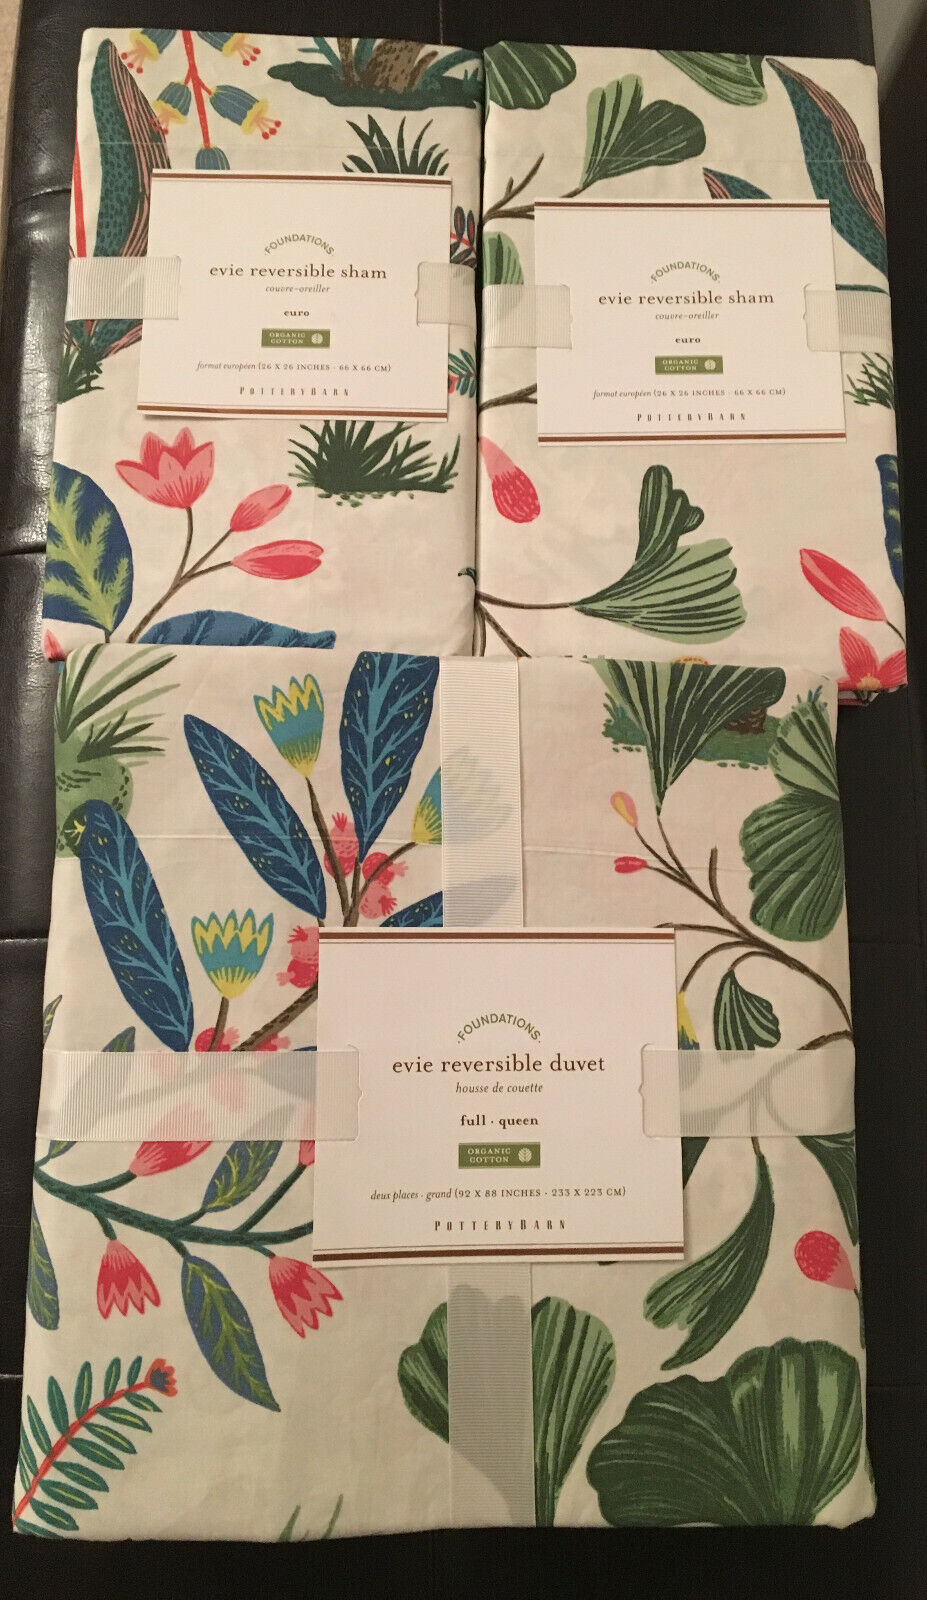 Pottery Barn 'EVIE' REVERSIBLE FULL QUEEN Duvet Cover & (2) EURO Shams SOLD OUT